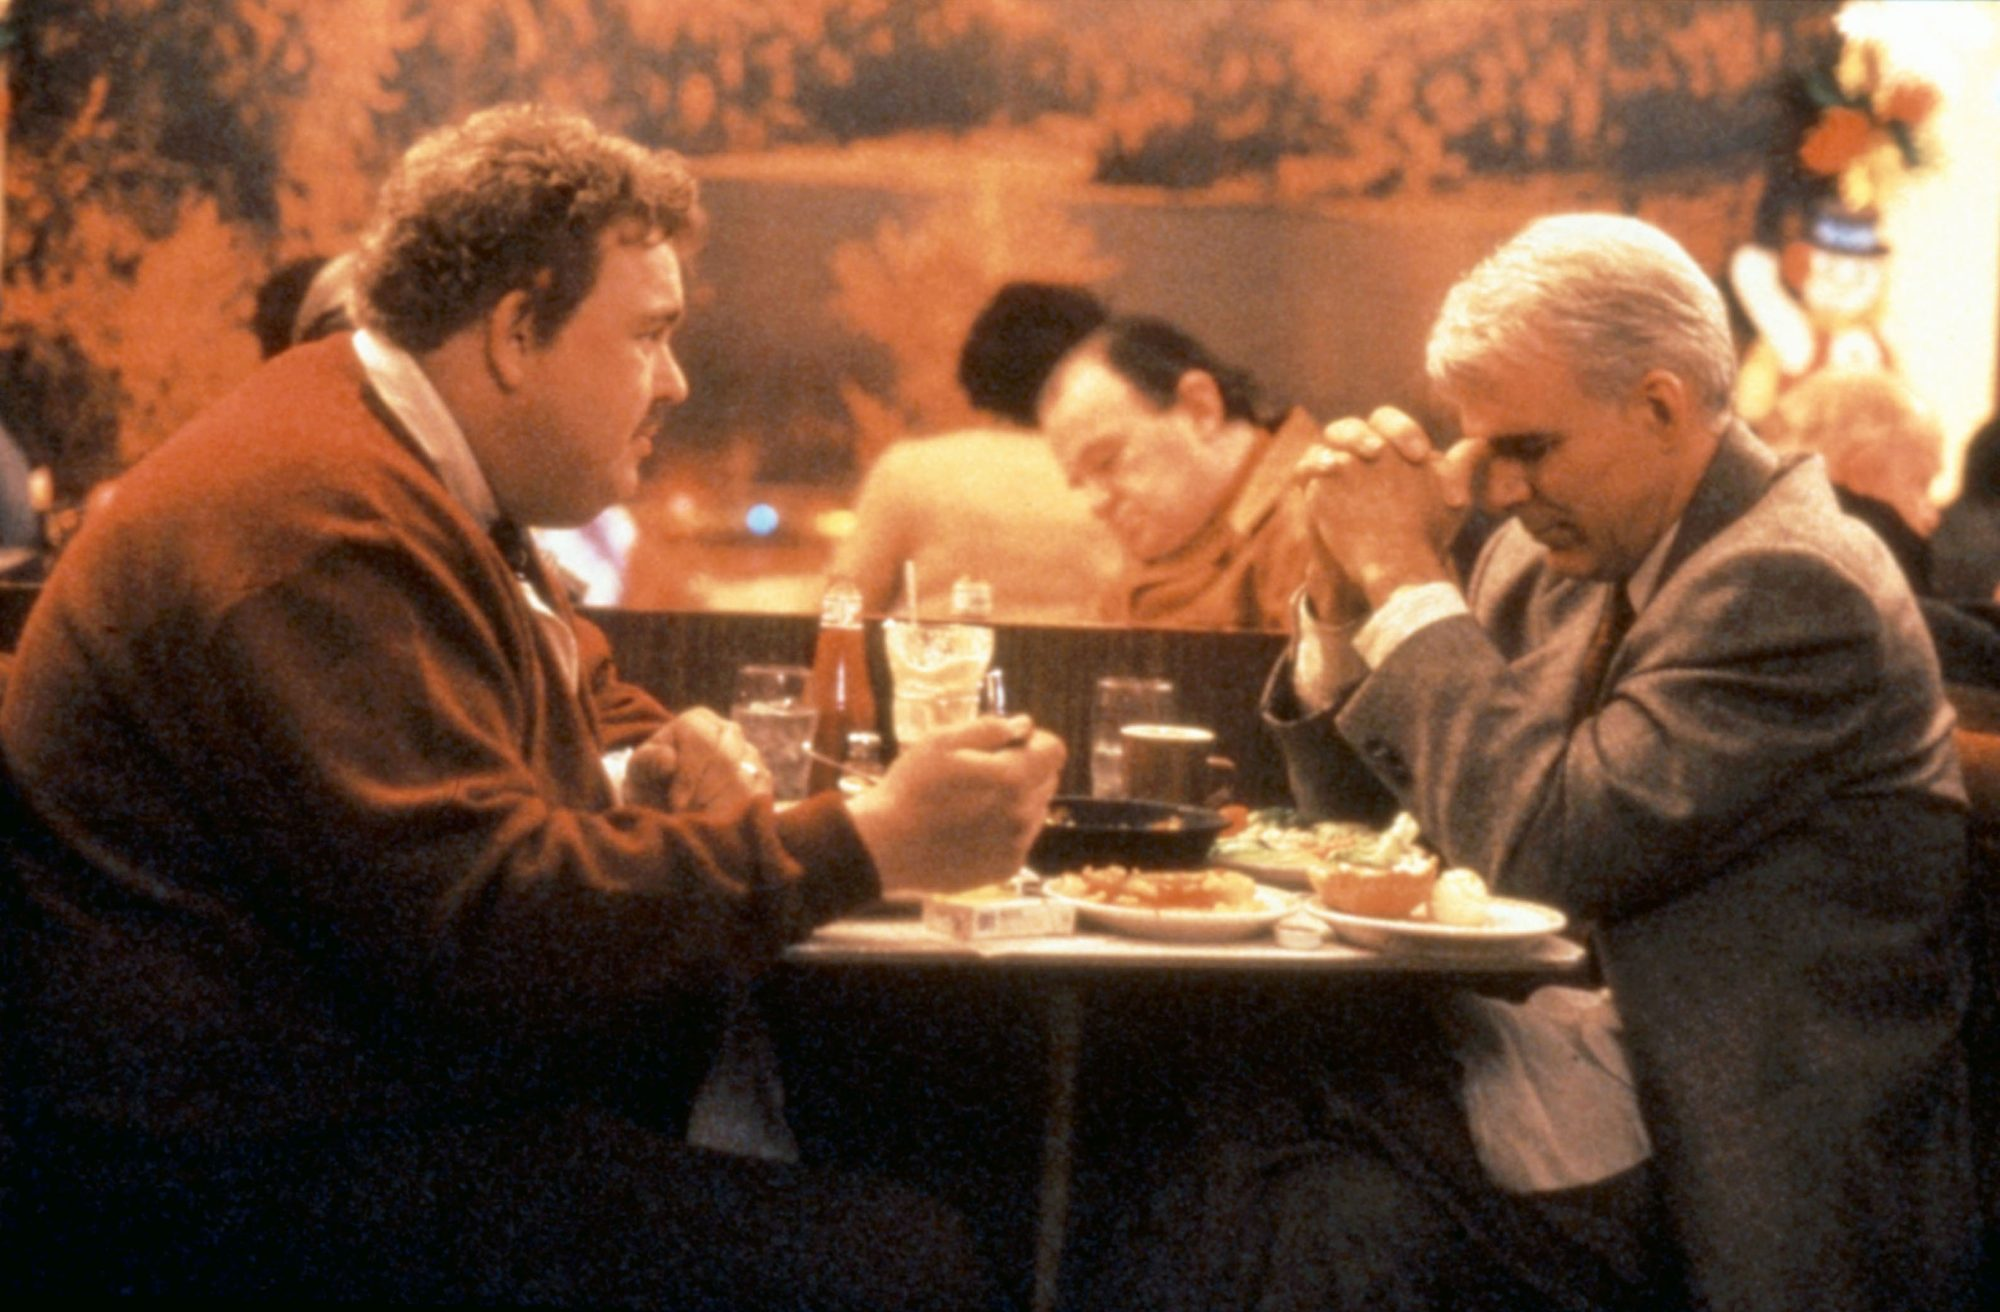 PLANES, TRAINS AND AUTOMOBILES, John Candy, Steve Martin, 1987, (c)Paramount/courtesy Everett Collec